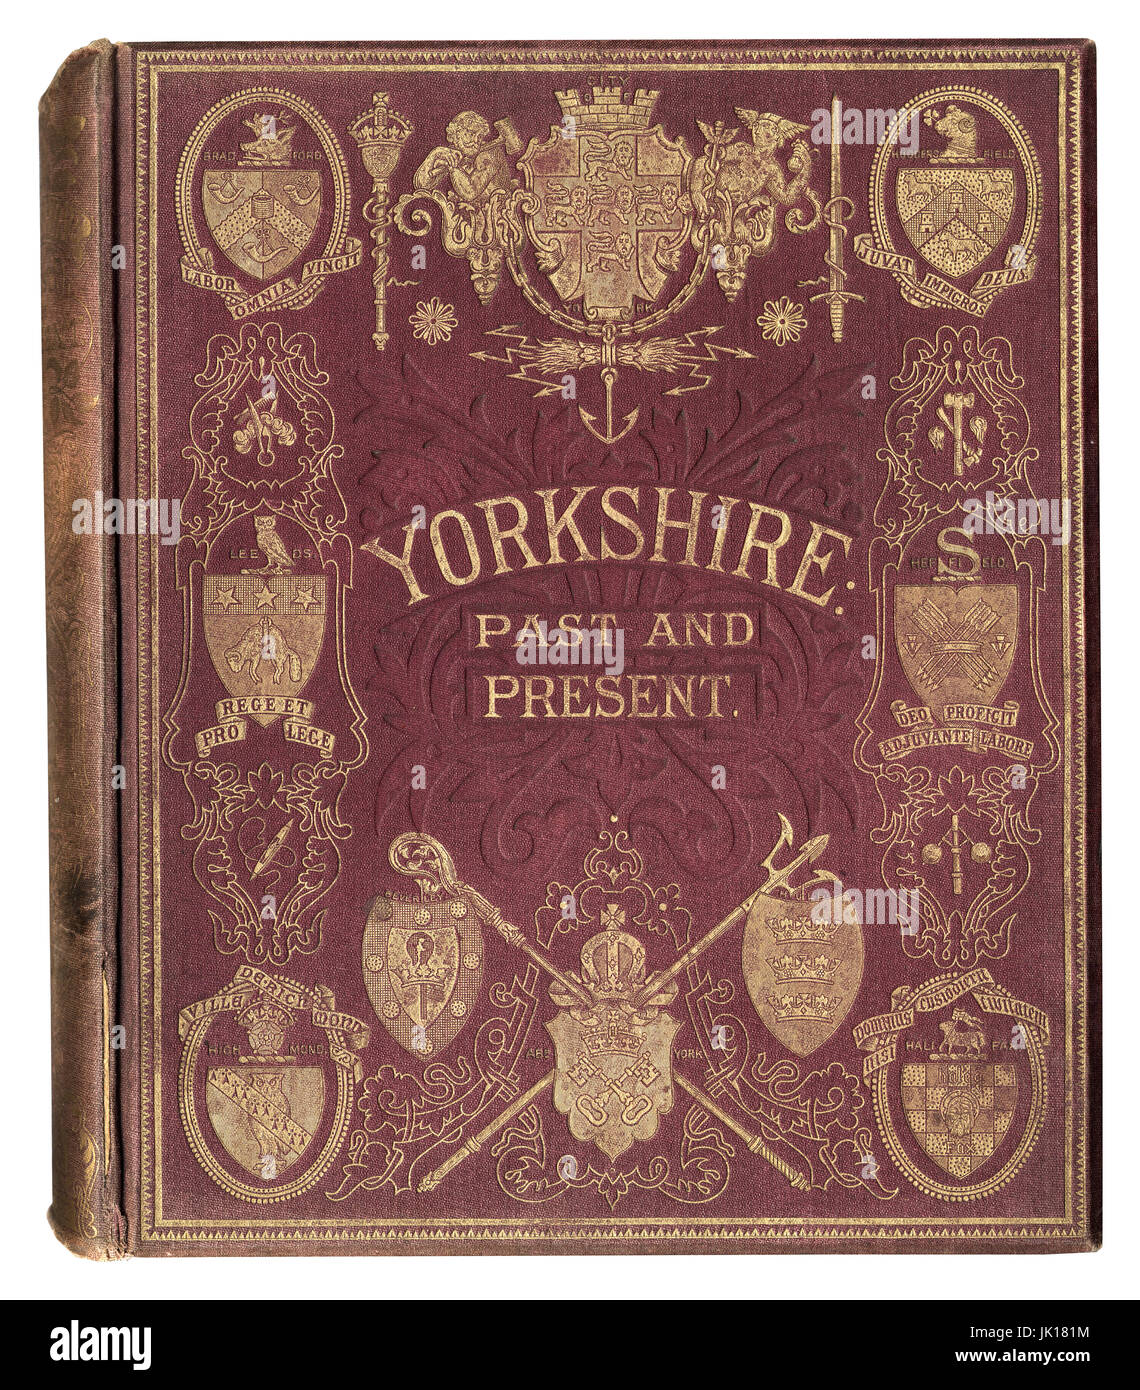 Antique book cover, Yorkshire Past and Present Thomas Baines - Stock Image